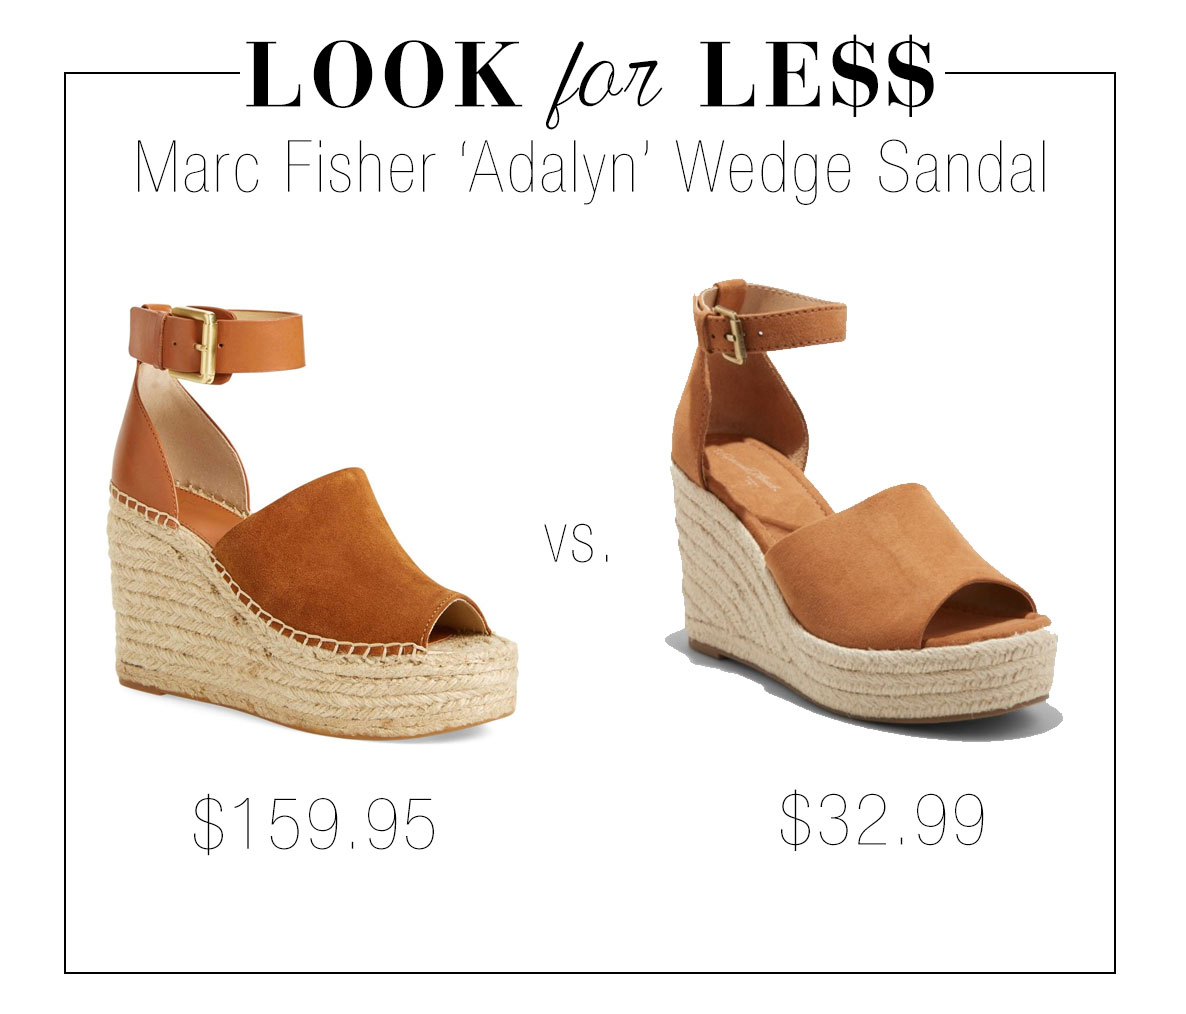 Shop this Marc Fisher wedge espadrille sandal look for less at Target!